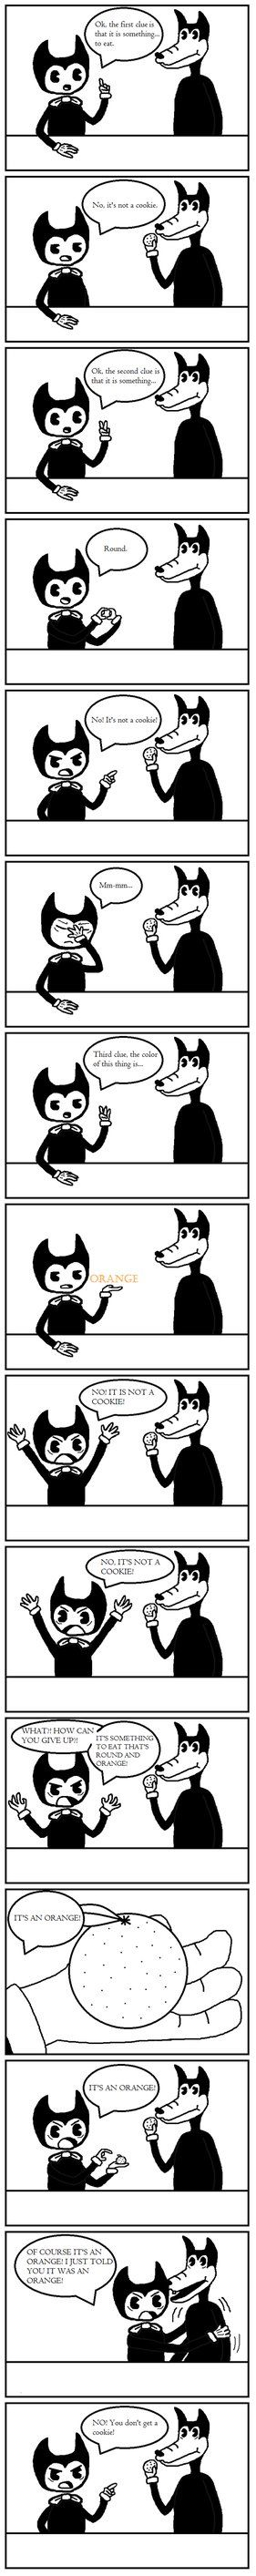 Bendy and the Ink Machine Comic - It's an Orange! by RinnyRobin